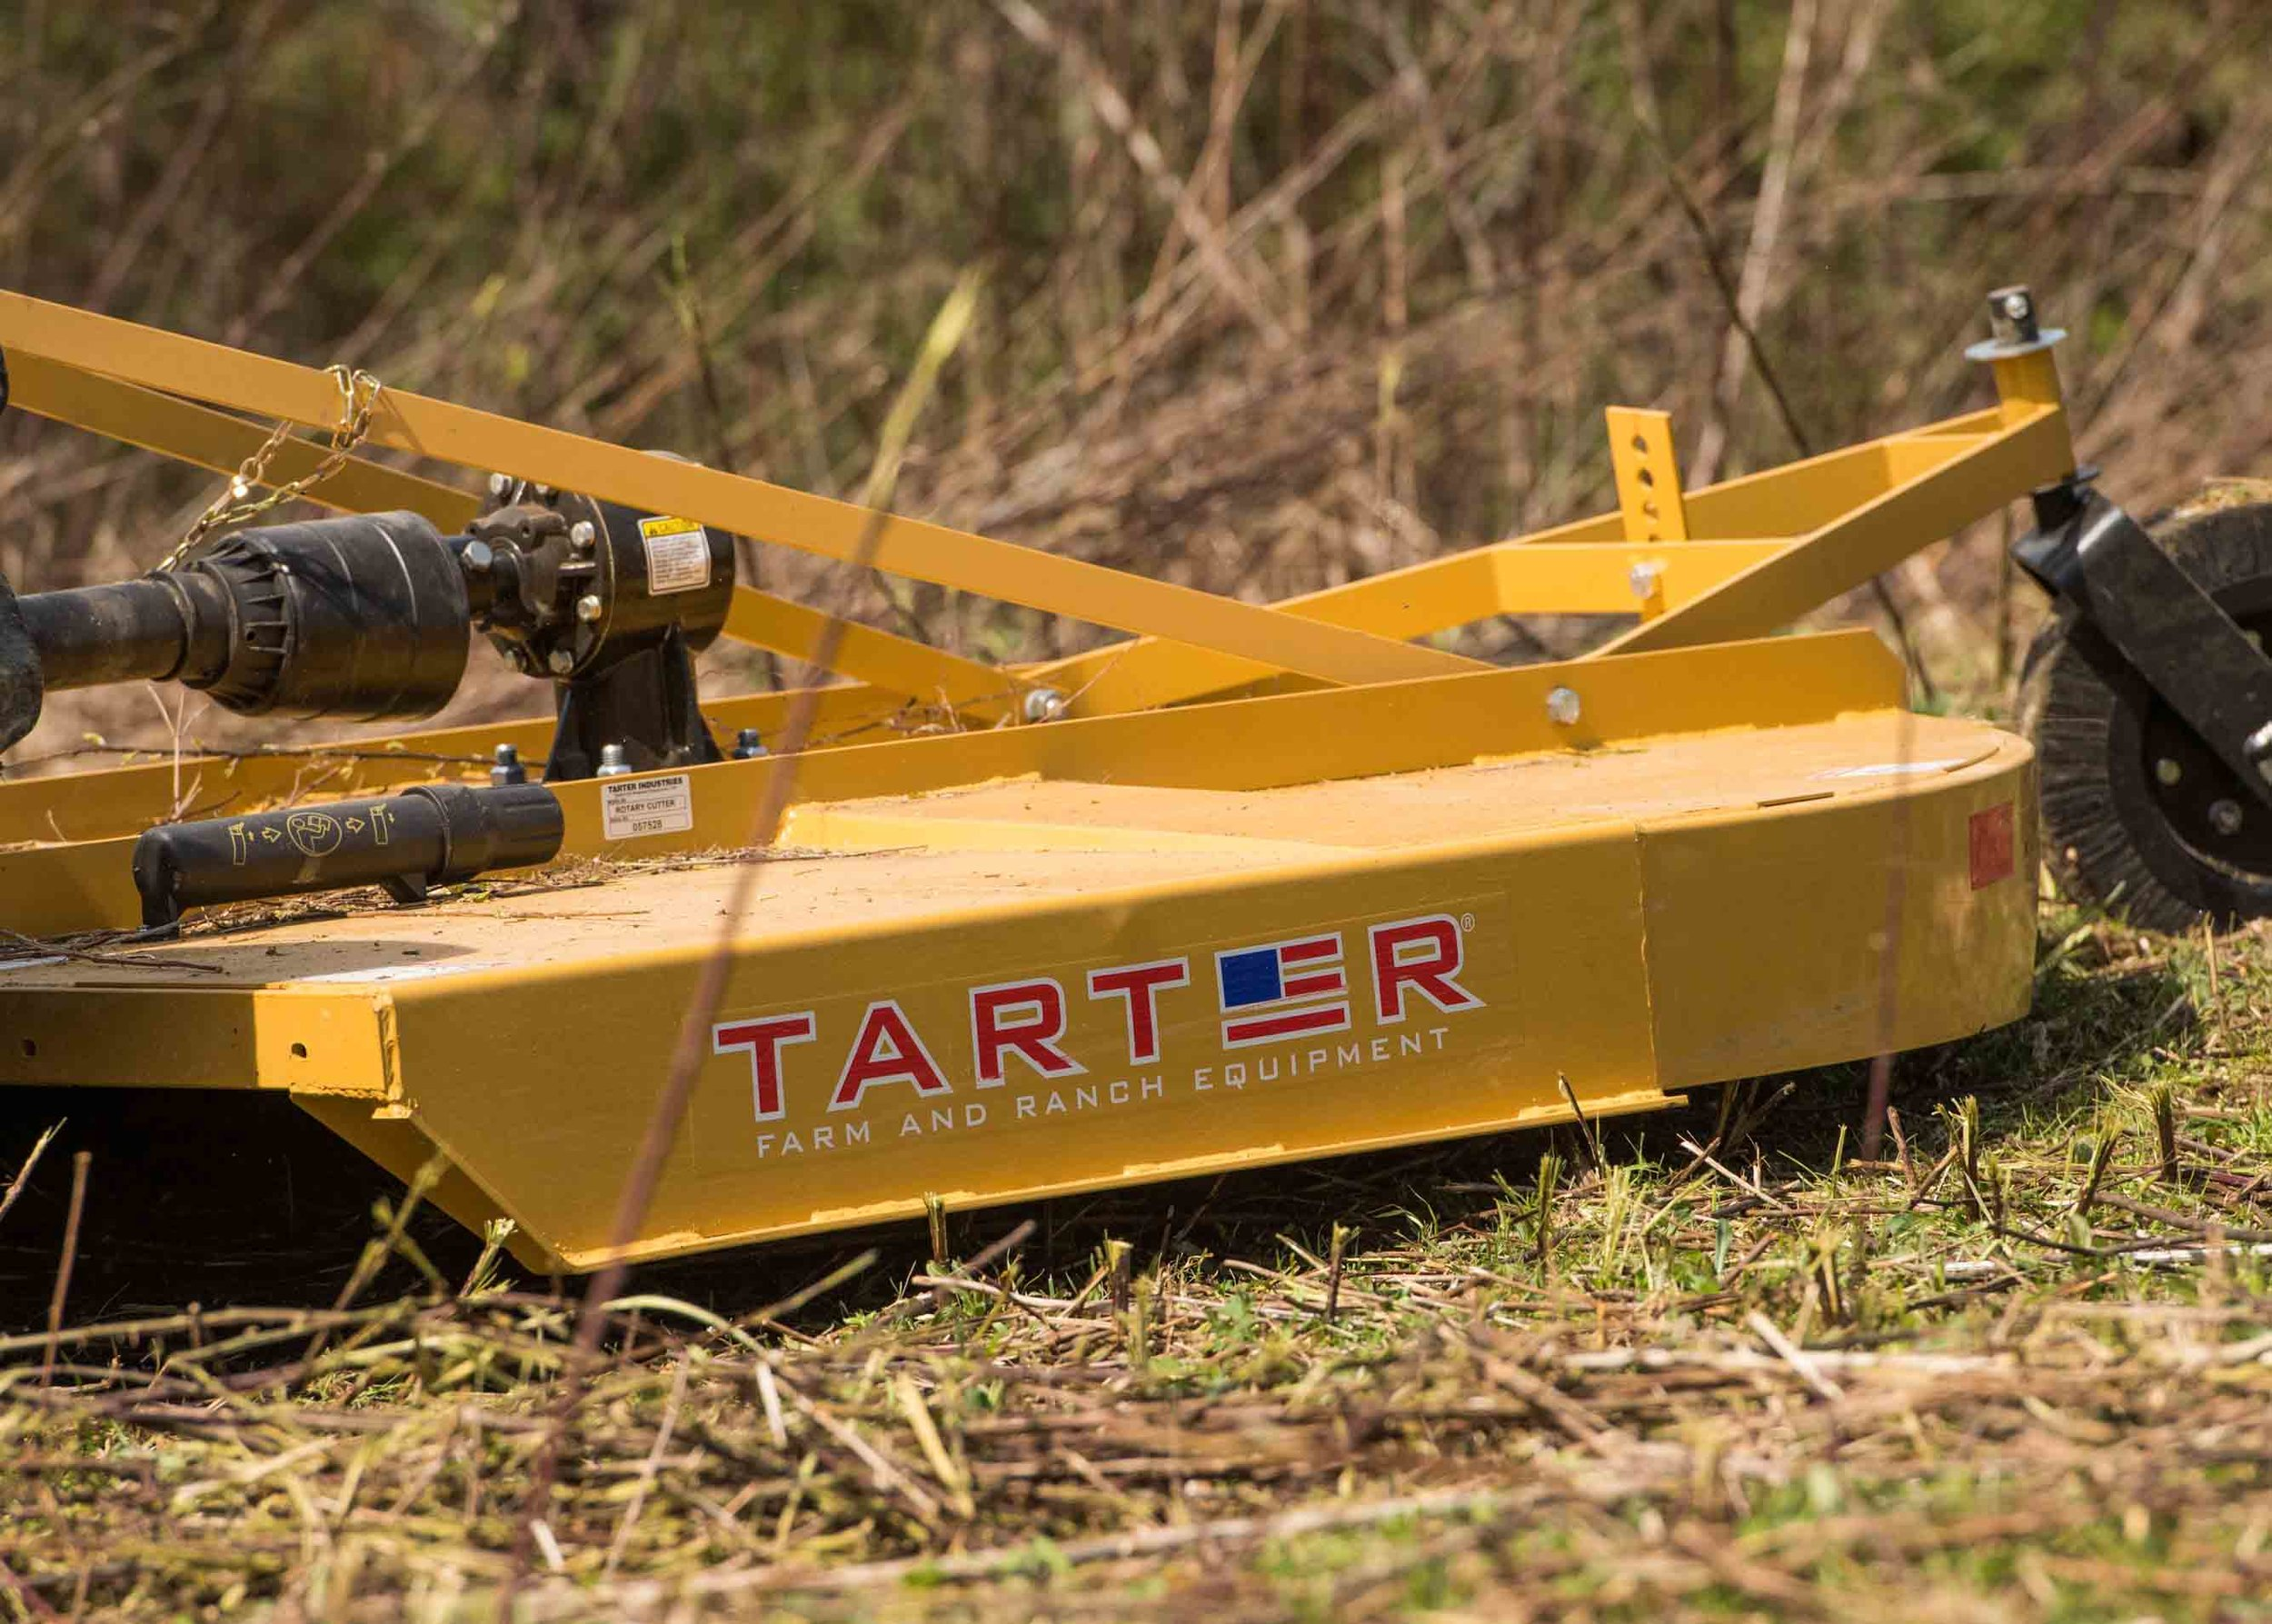 3-Point — Tarter Farm and Ranch Equipment | American Made Quality